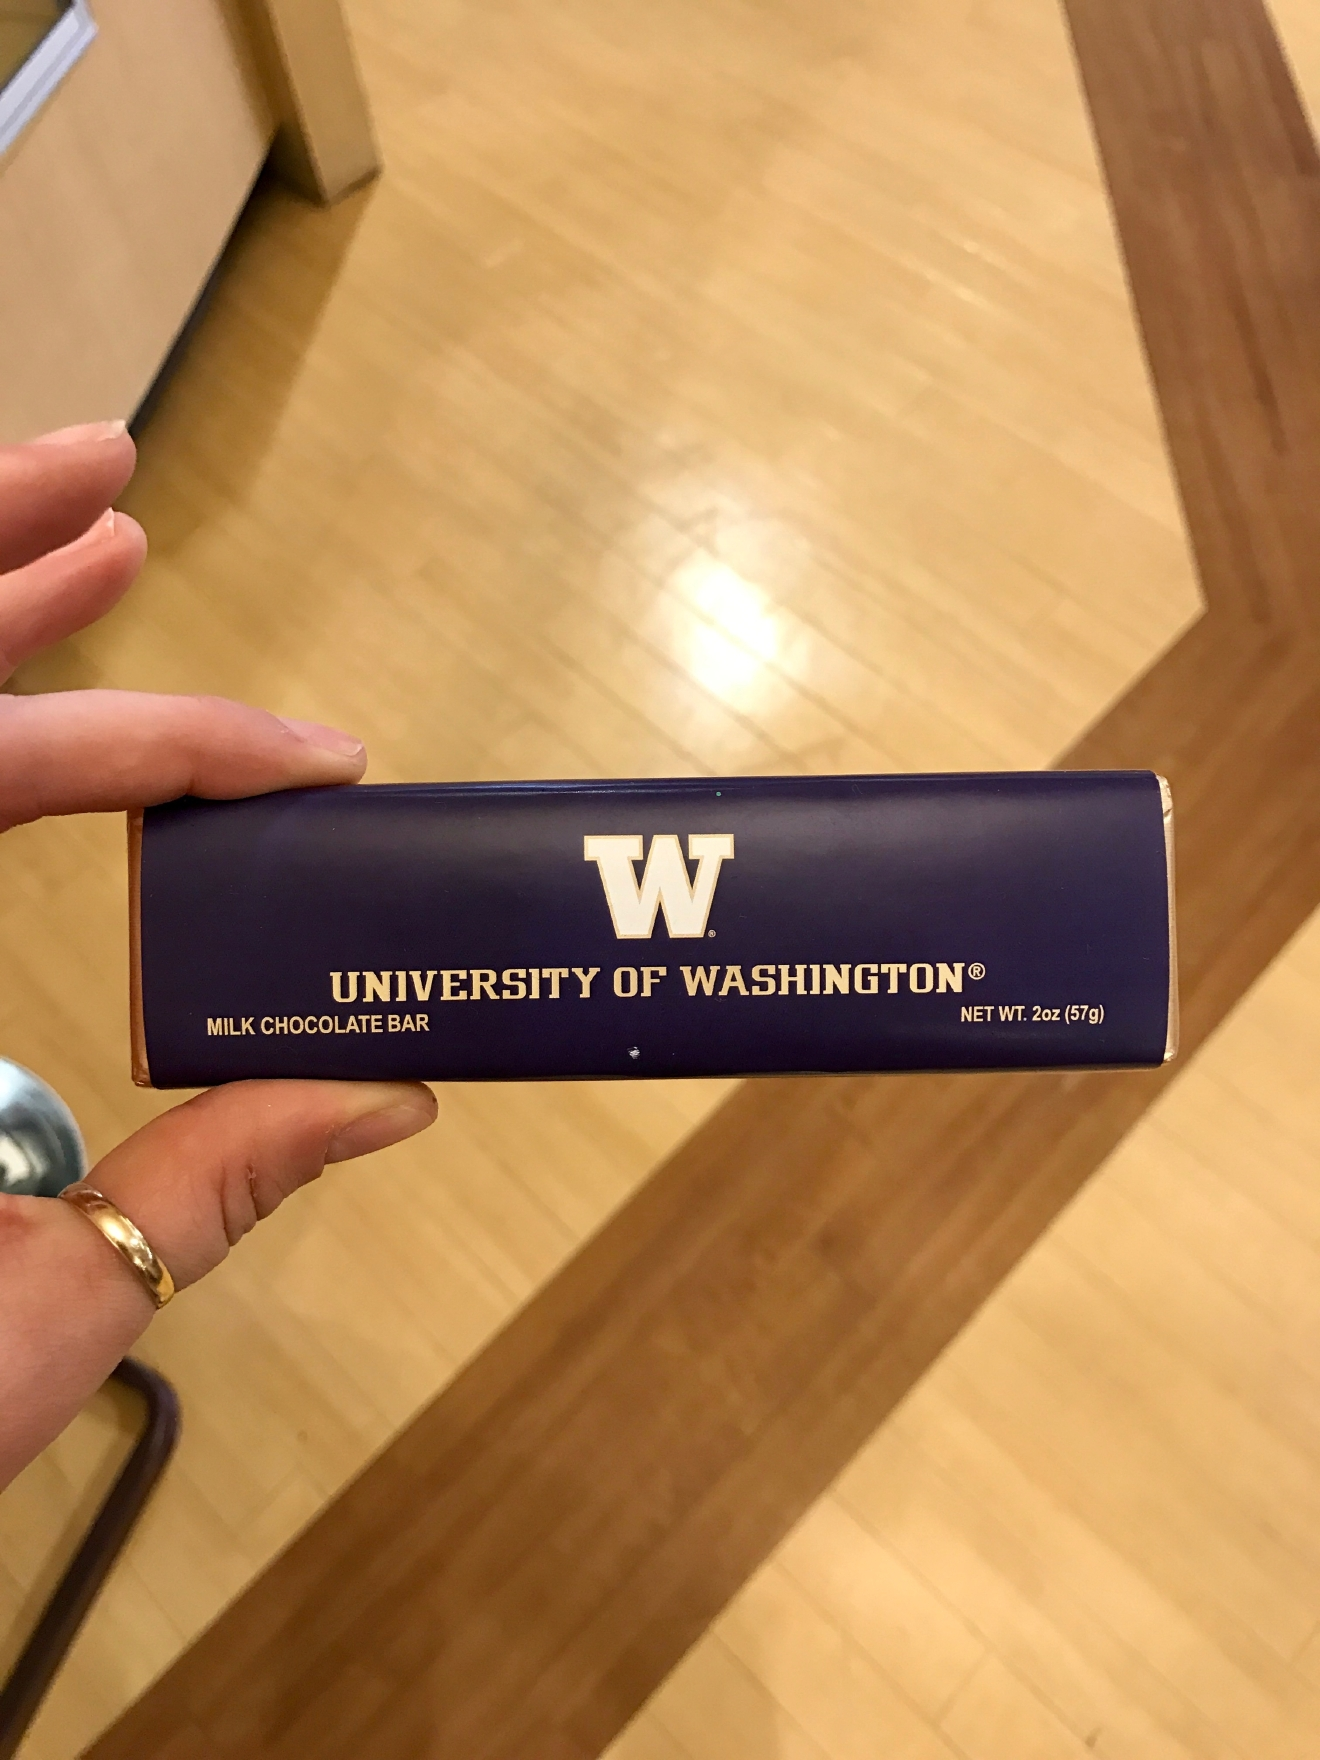 Husky Chocolate - $3.95                                          Whether you're a current student, alum, or just *love* the Dawgs, it's a pretty exciting time to be a Husky fan right now. Just to catch you up, the University of Washington football team is having one of their best seasons in years, and will be playing the Peach Bowl in Atlanta on December 31st. If you know a Dawg fan, they're probably salivating at the mouth right about now. Which is why it's a perfect time to give them a themed gift! Here are some of the coolest Husky gear we saw at the University Bookstore on the Avenue during our last visit. Pro Tip: They're open 10 a.m. - 7 p.m. on Christmas Eve! (Image: Britt Thorson / Seattle Refined)